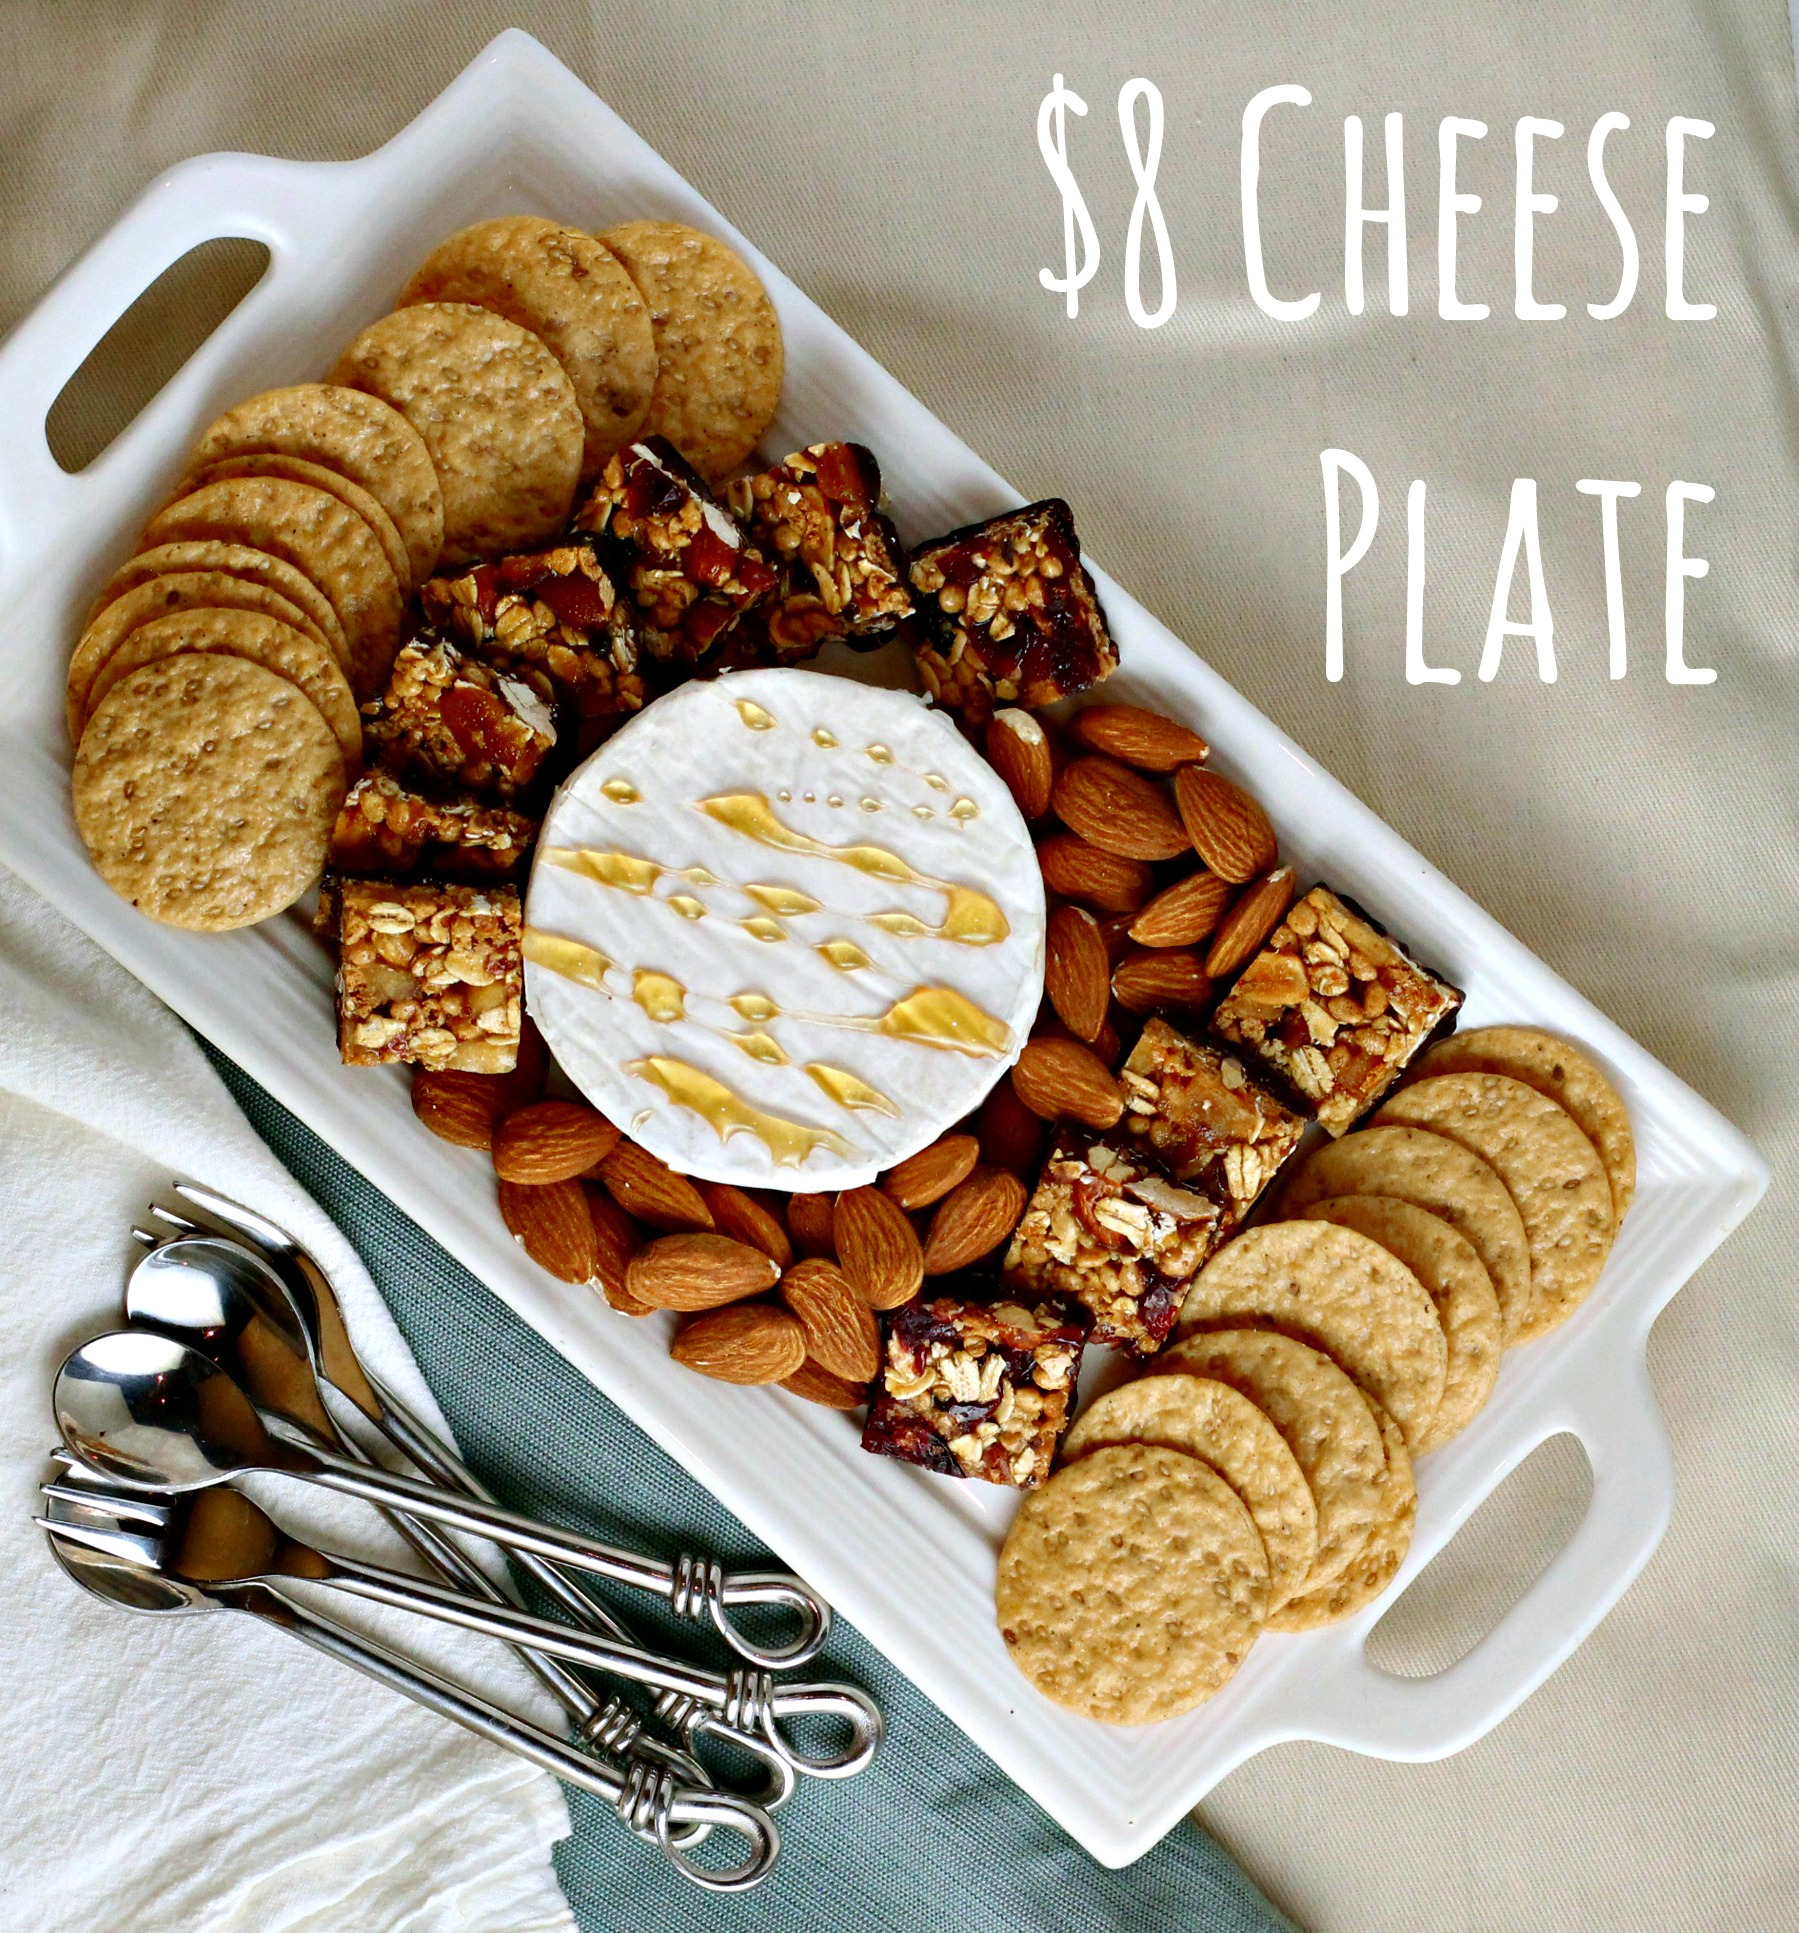 5-Minute Fancy Cheese Plate on a Budget ferventfoodie.com & 5-Minute Fancy Cheese Plate on a Budget u2013 Fervent Foodie